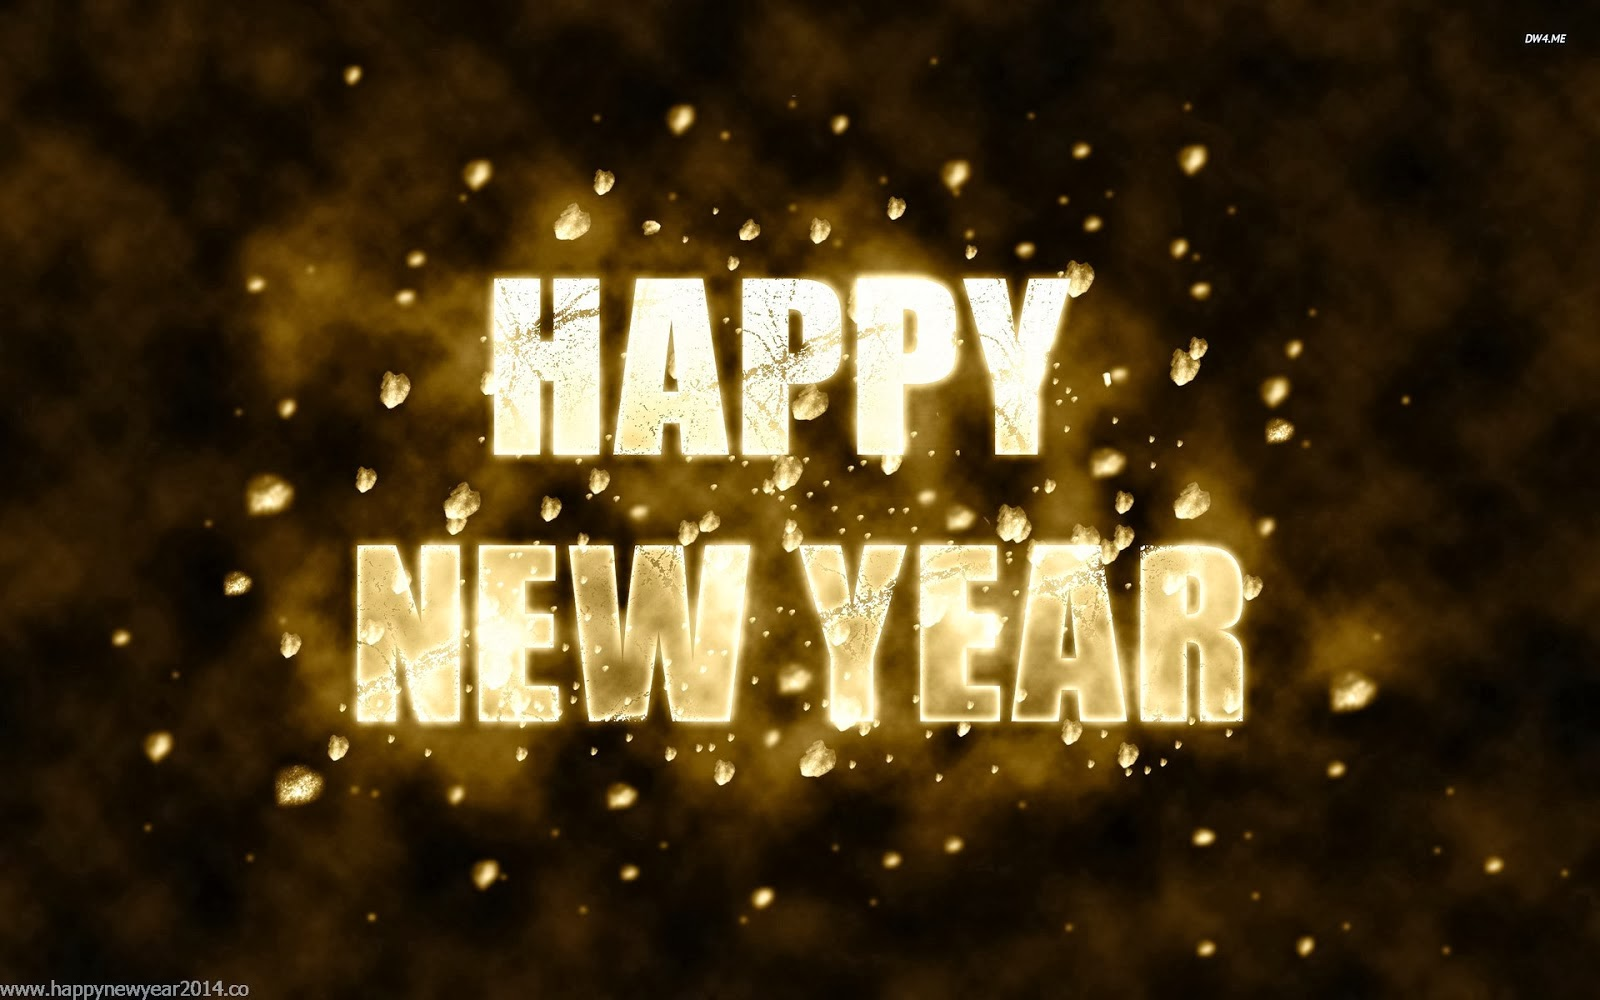 WBBZ-TV & Red Cross Wish You A Happy & Safe New Year